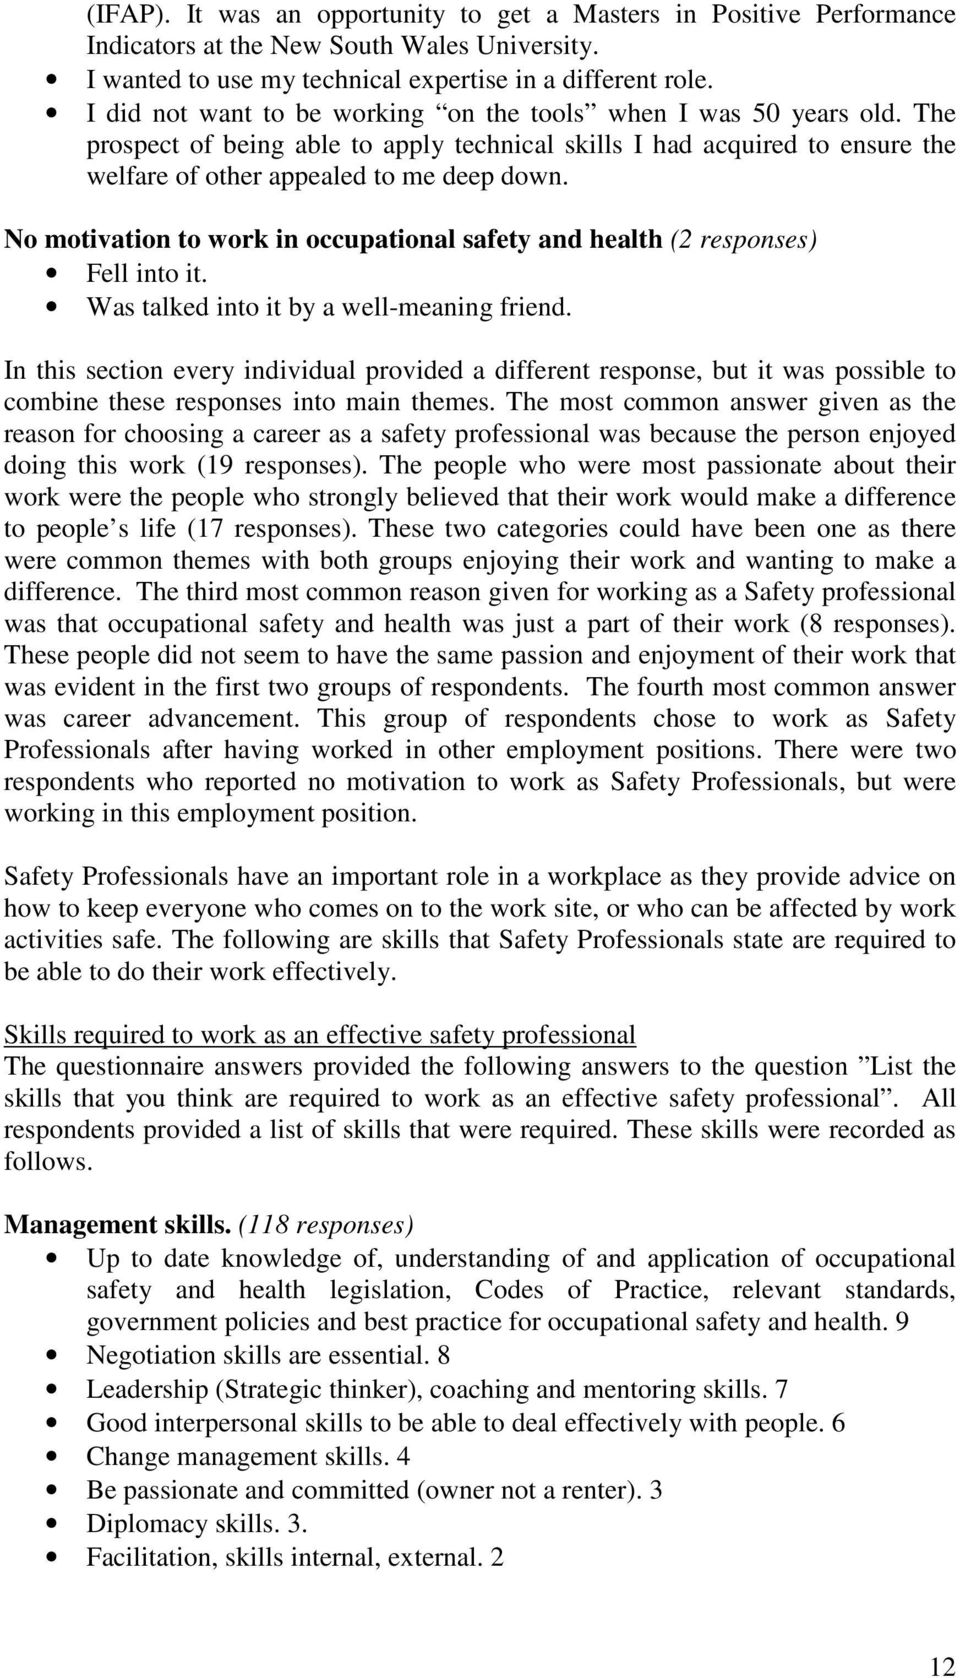 appendix responses pdf no motivation to work in occupational safety and health 2 responses fell into it